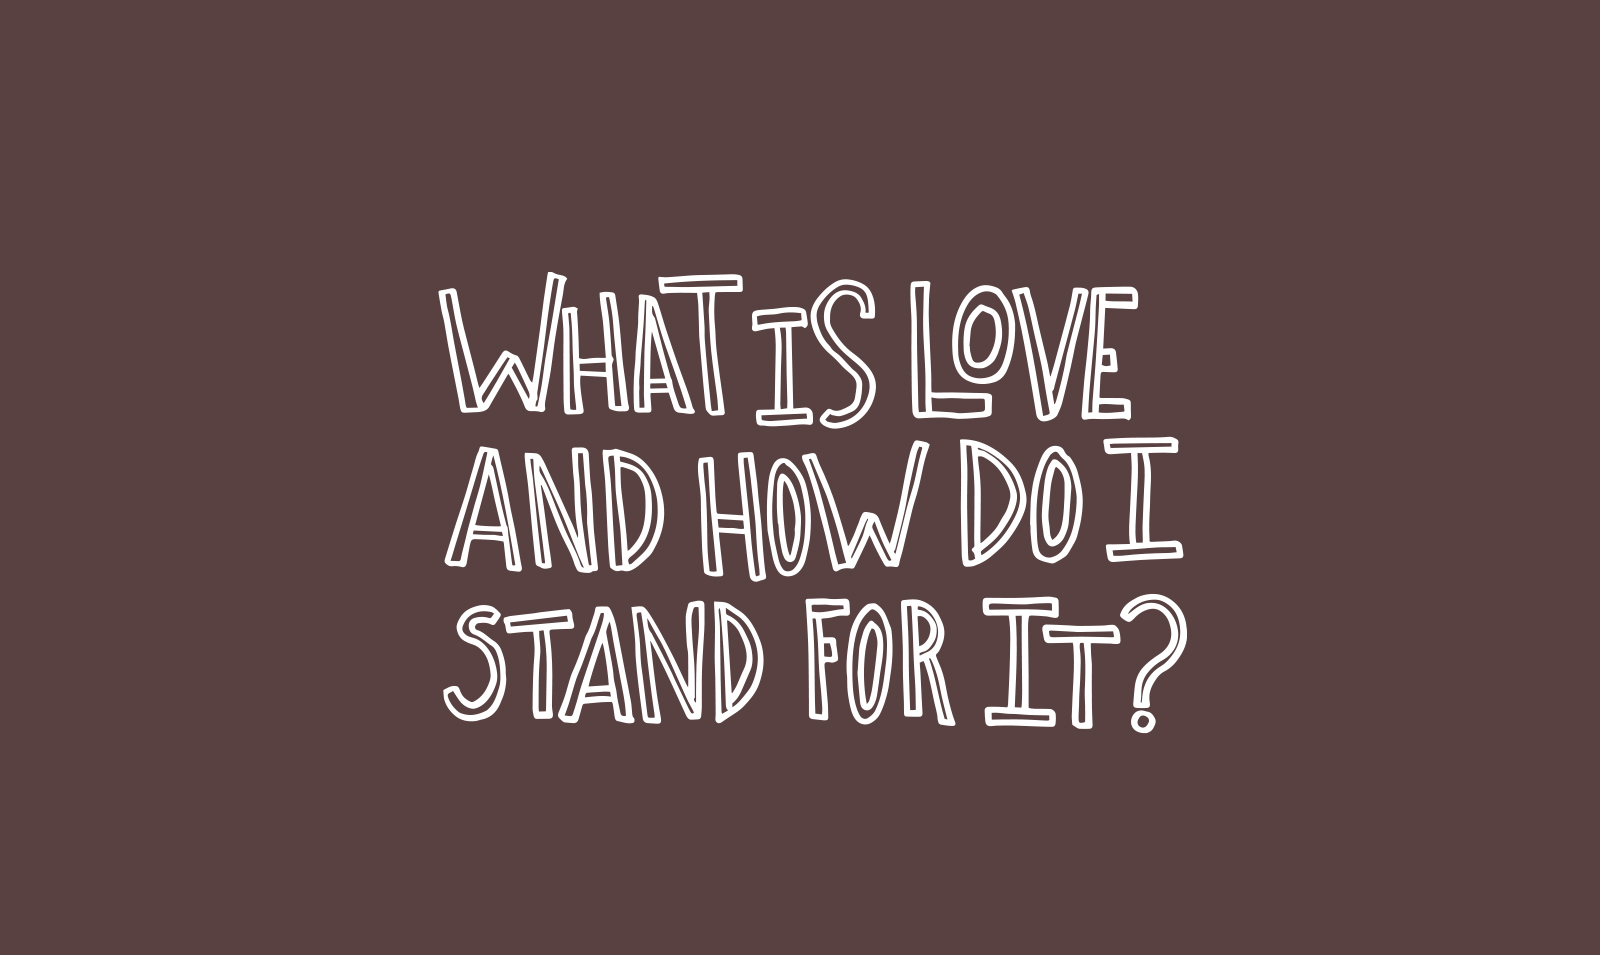 What is Love and how do I stand for it? Asking for myself.